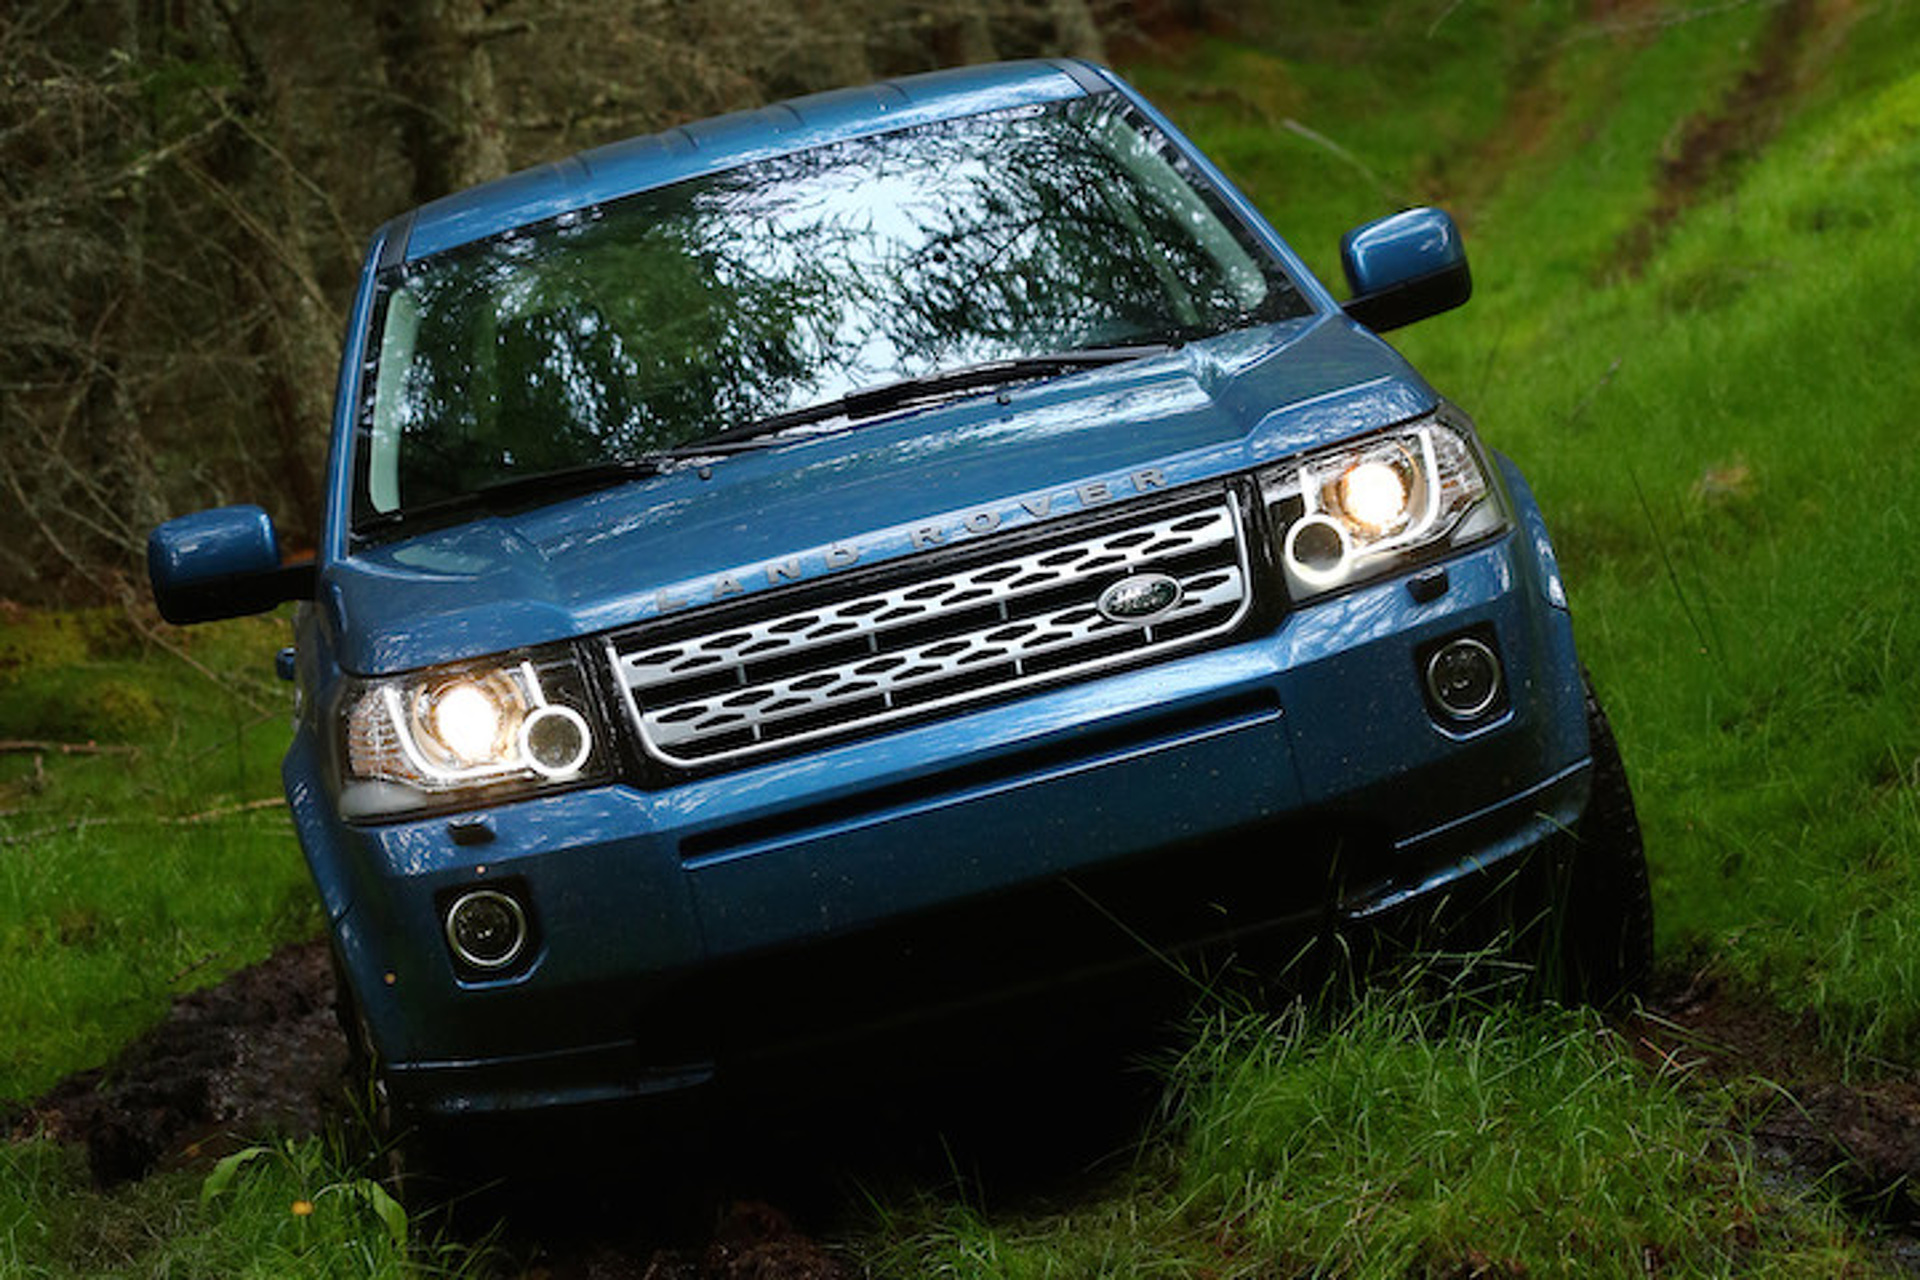 https://icdn-4.motor1.com/images/mgl/xGMe2/s1/land-rover-freelander-to-continue-life-under-tata-nameplate.jpg